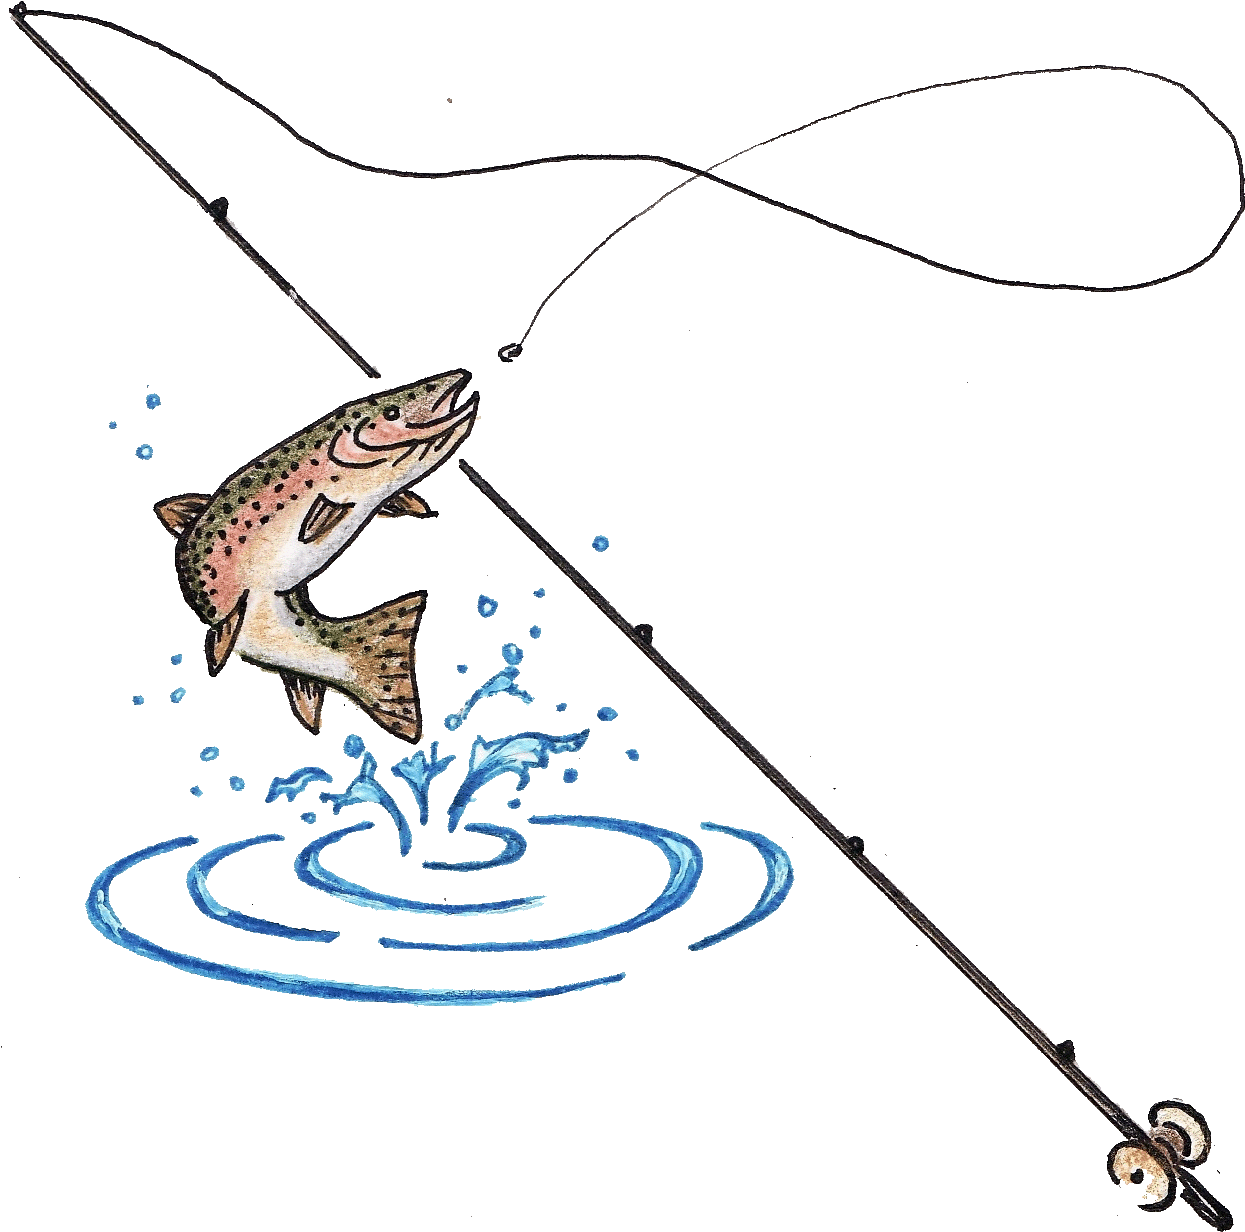 Fishing Pole Clipart Fishing Tool.